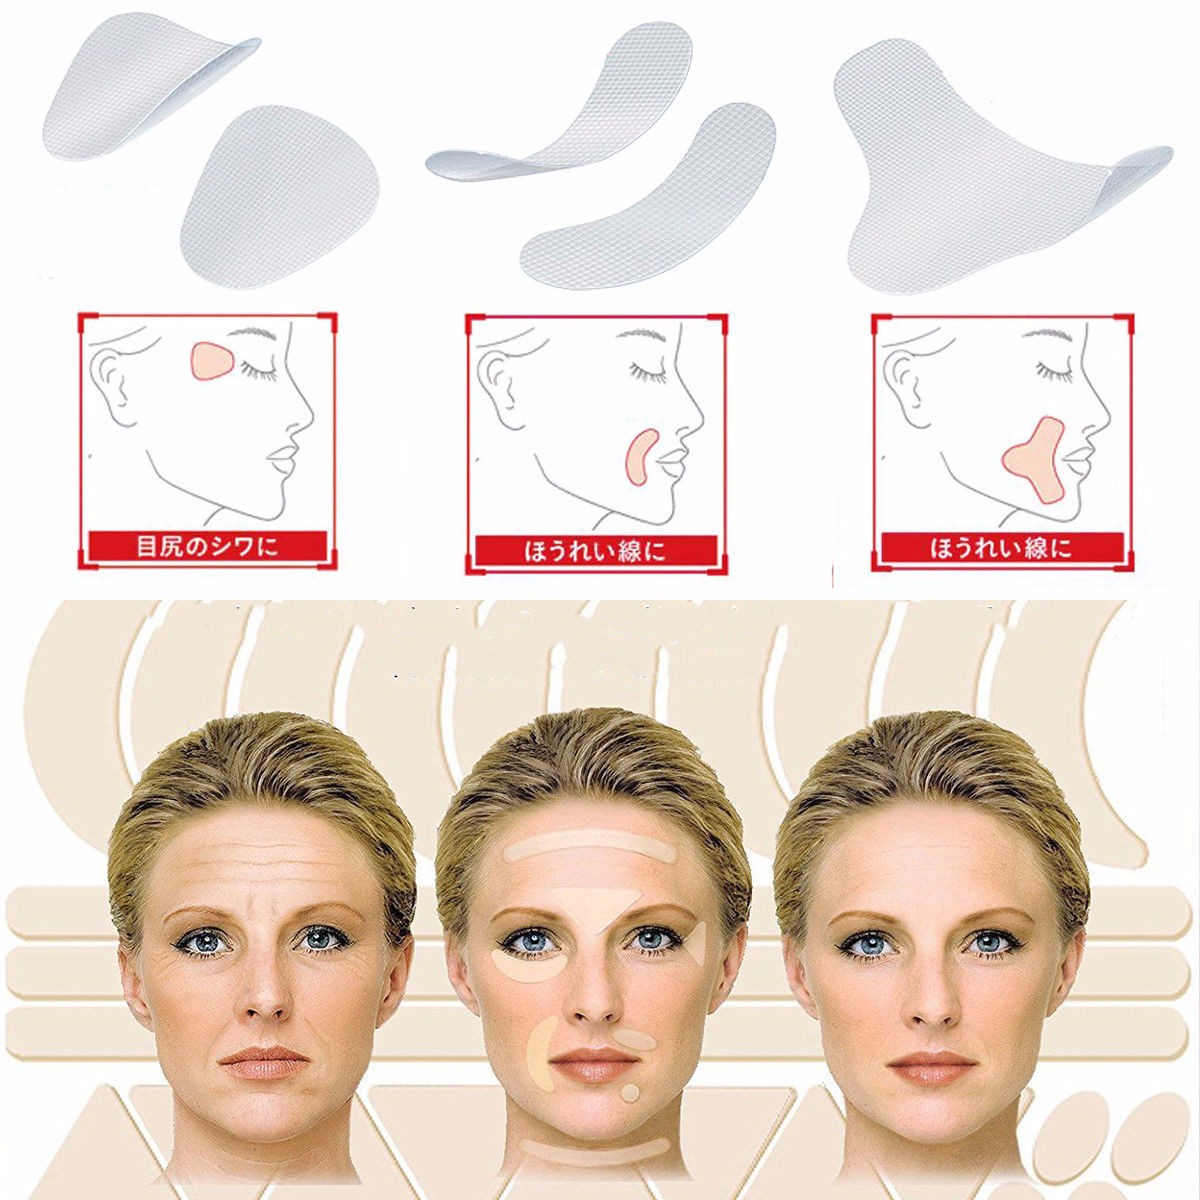 Facial Line Wrinkle Sagging Skin Lift Up Tape Frown Smile Lines V-Shape 3 Types Face Lift Up Fast Beauty Makeup Face Lift Tools